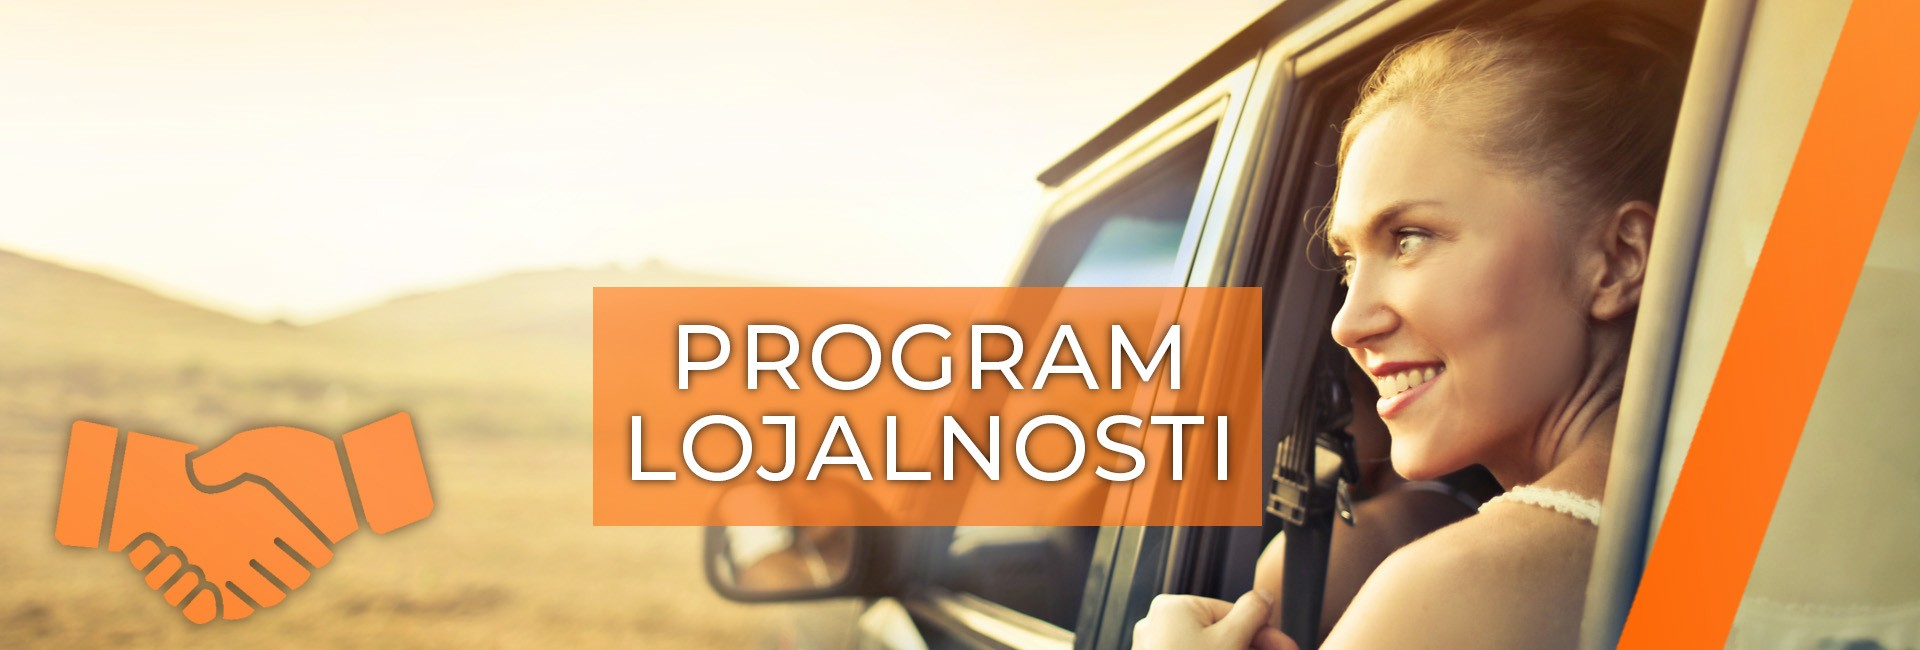 PROGRAM LOJALNOSTI